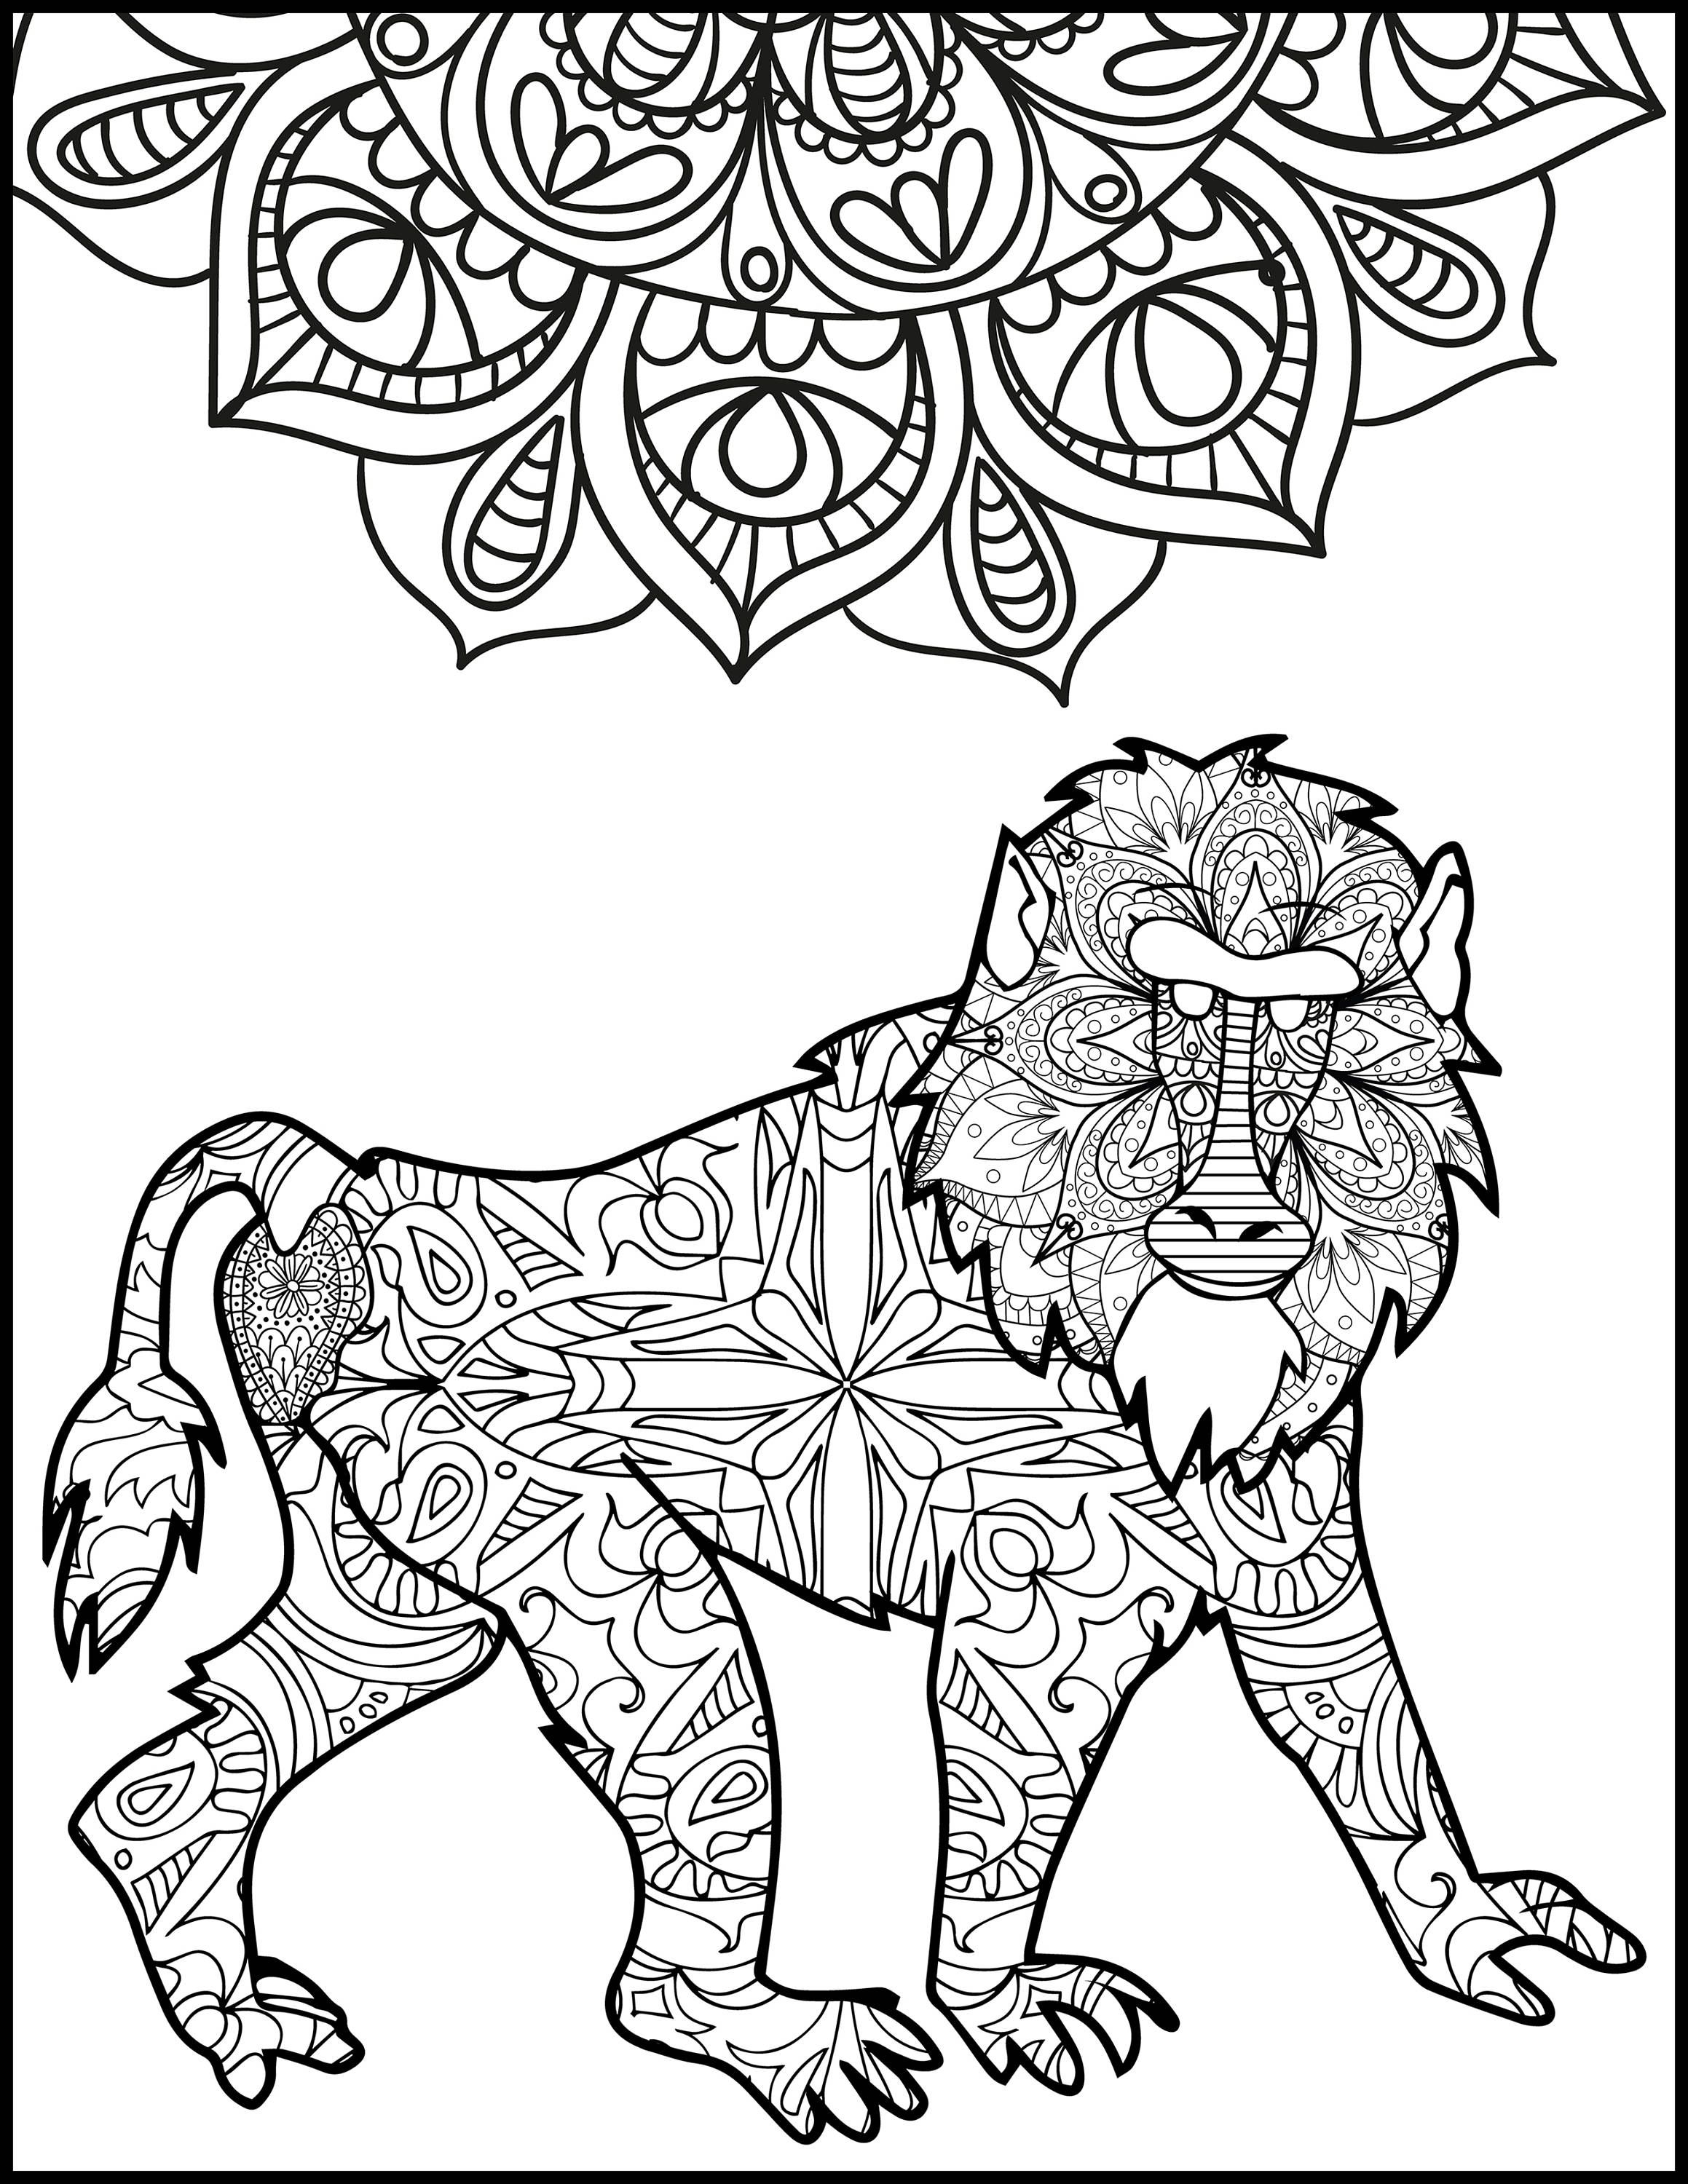 Baboon Adult Coloring Pages Coloring Page For Adults Animal